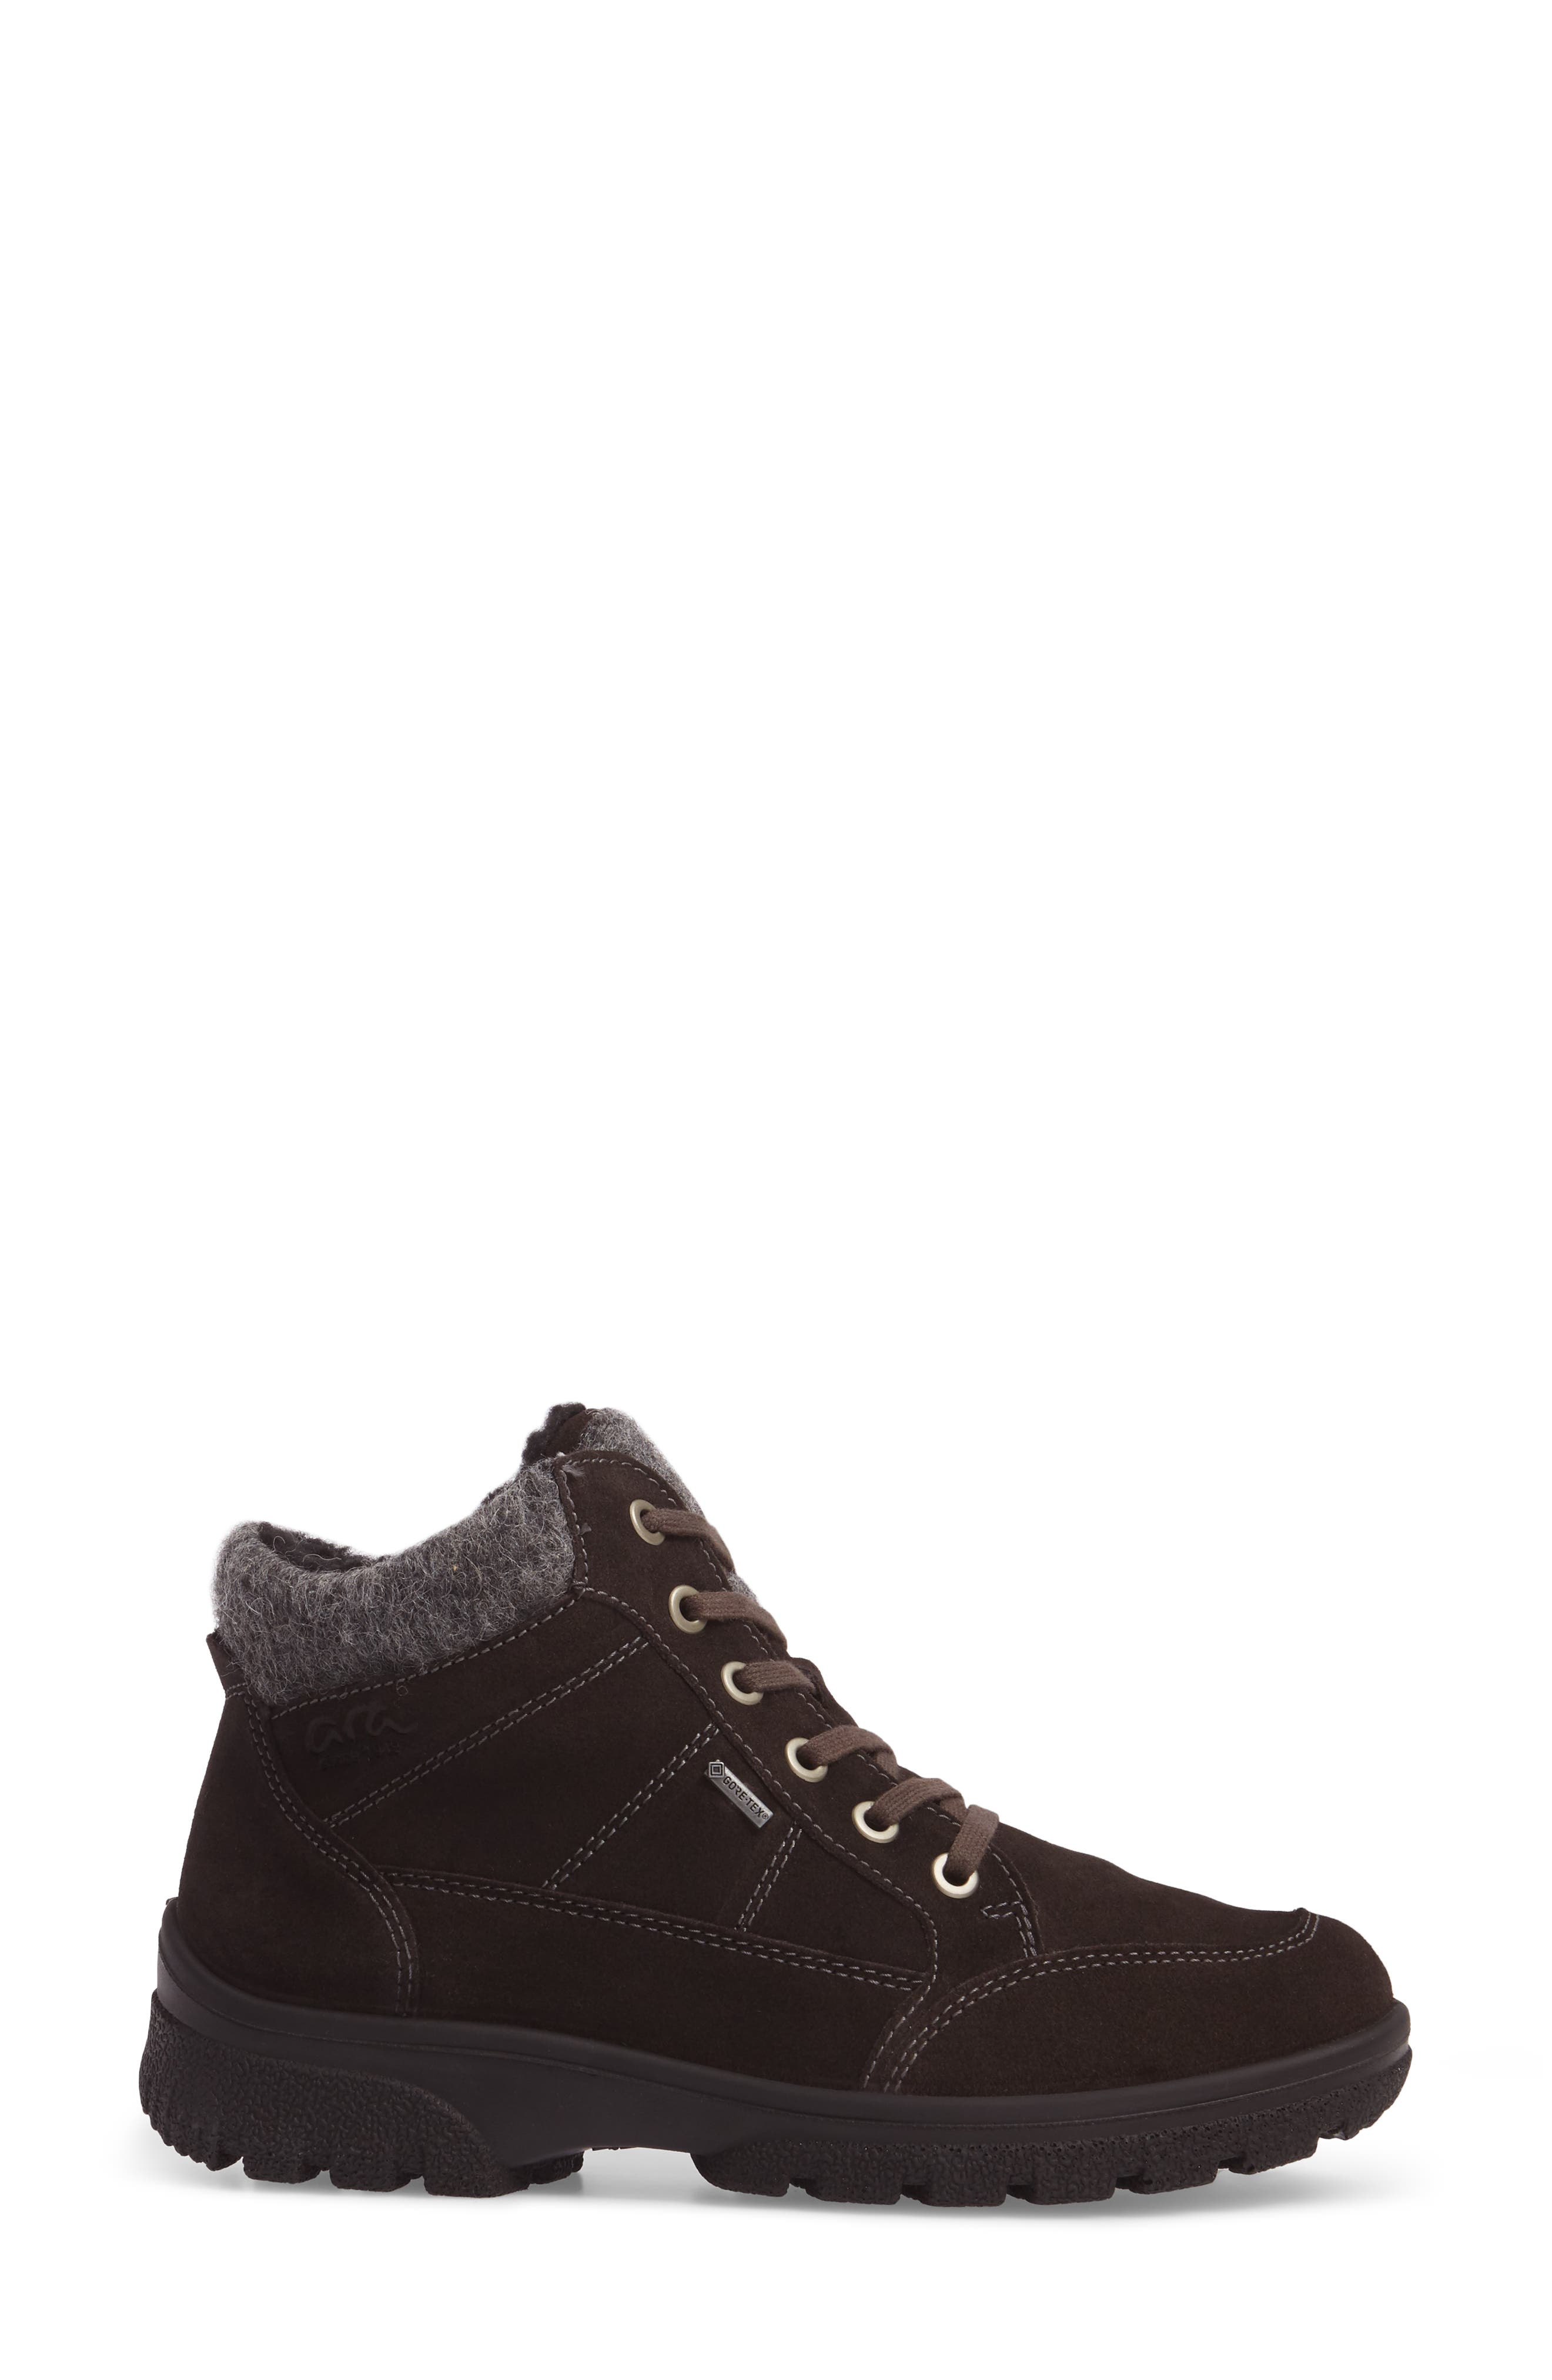 Waterproof Gore-Tex<sup>®</sup> Hiking Boot,                             Alternate thumbnail 3, color,                             LAVA SUEDE